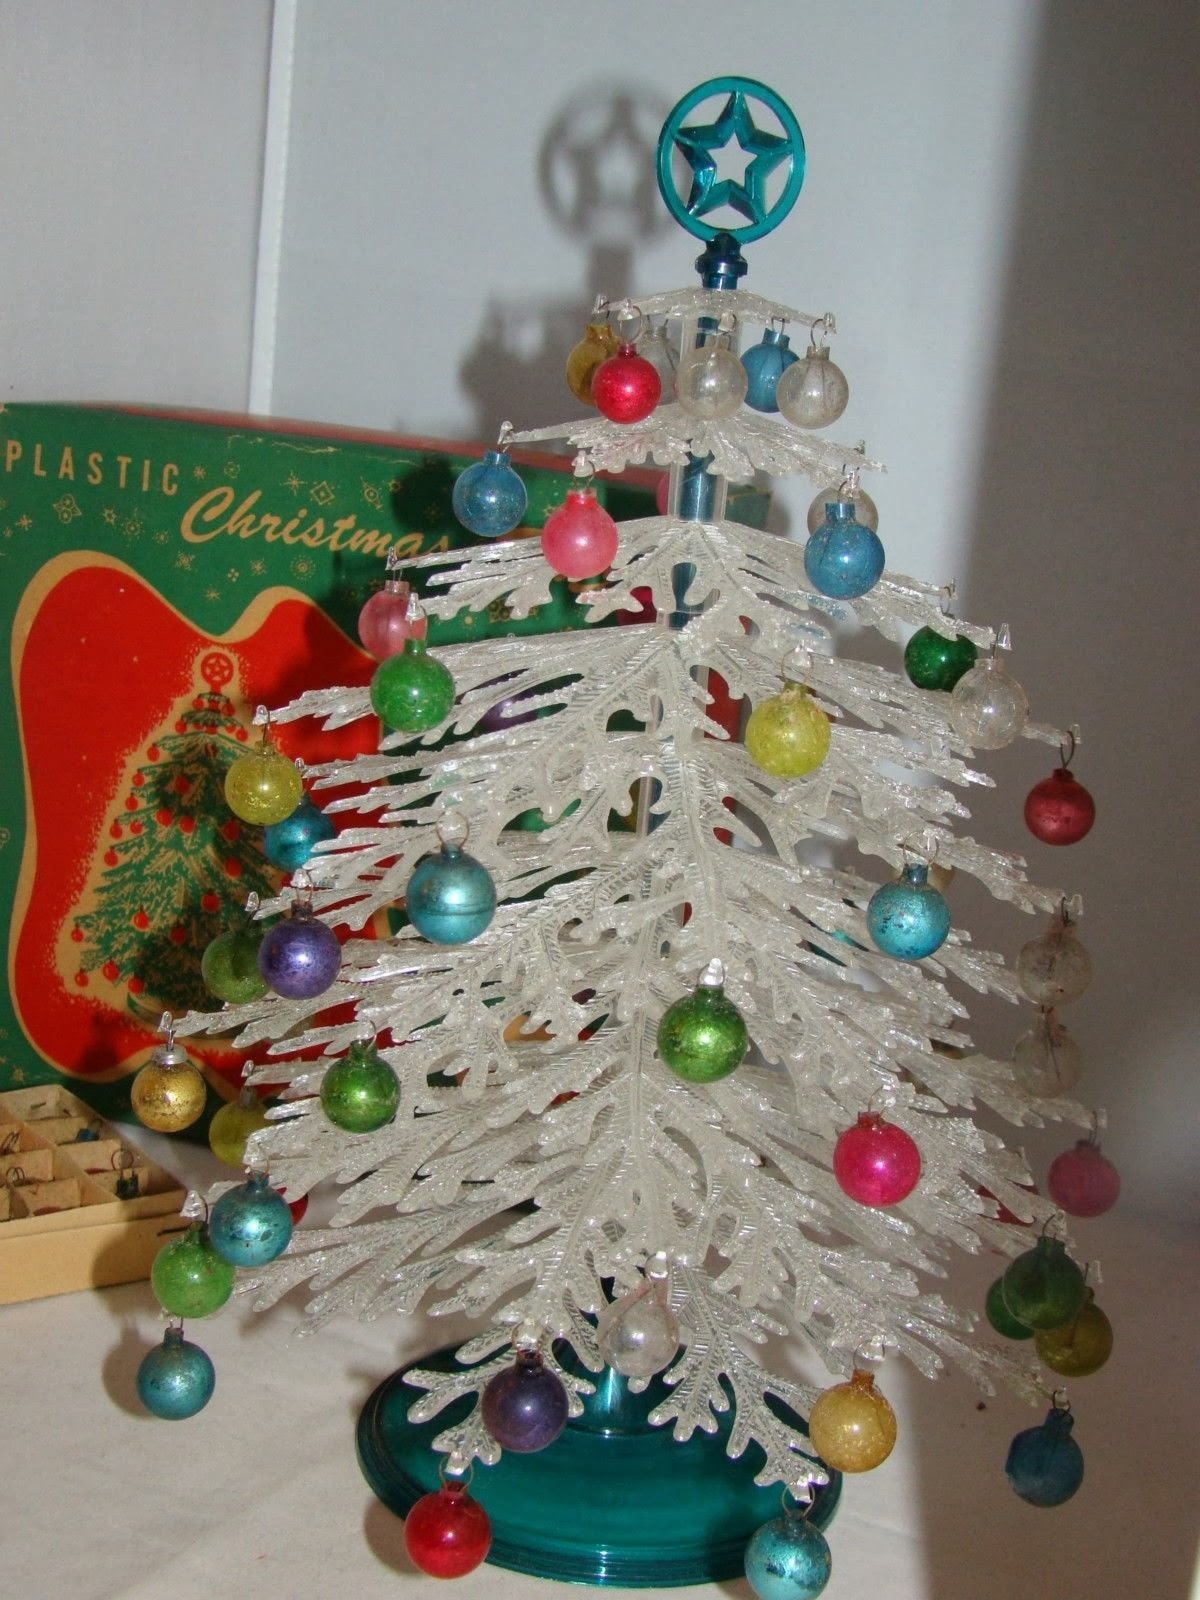 Gold country girls vintage plastic christmas trees